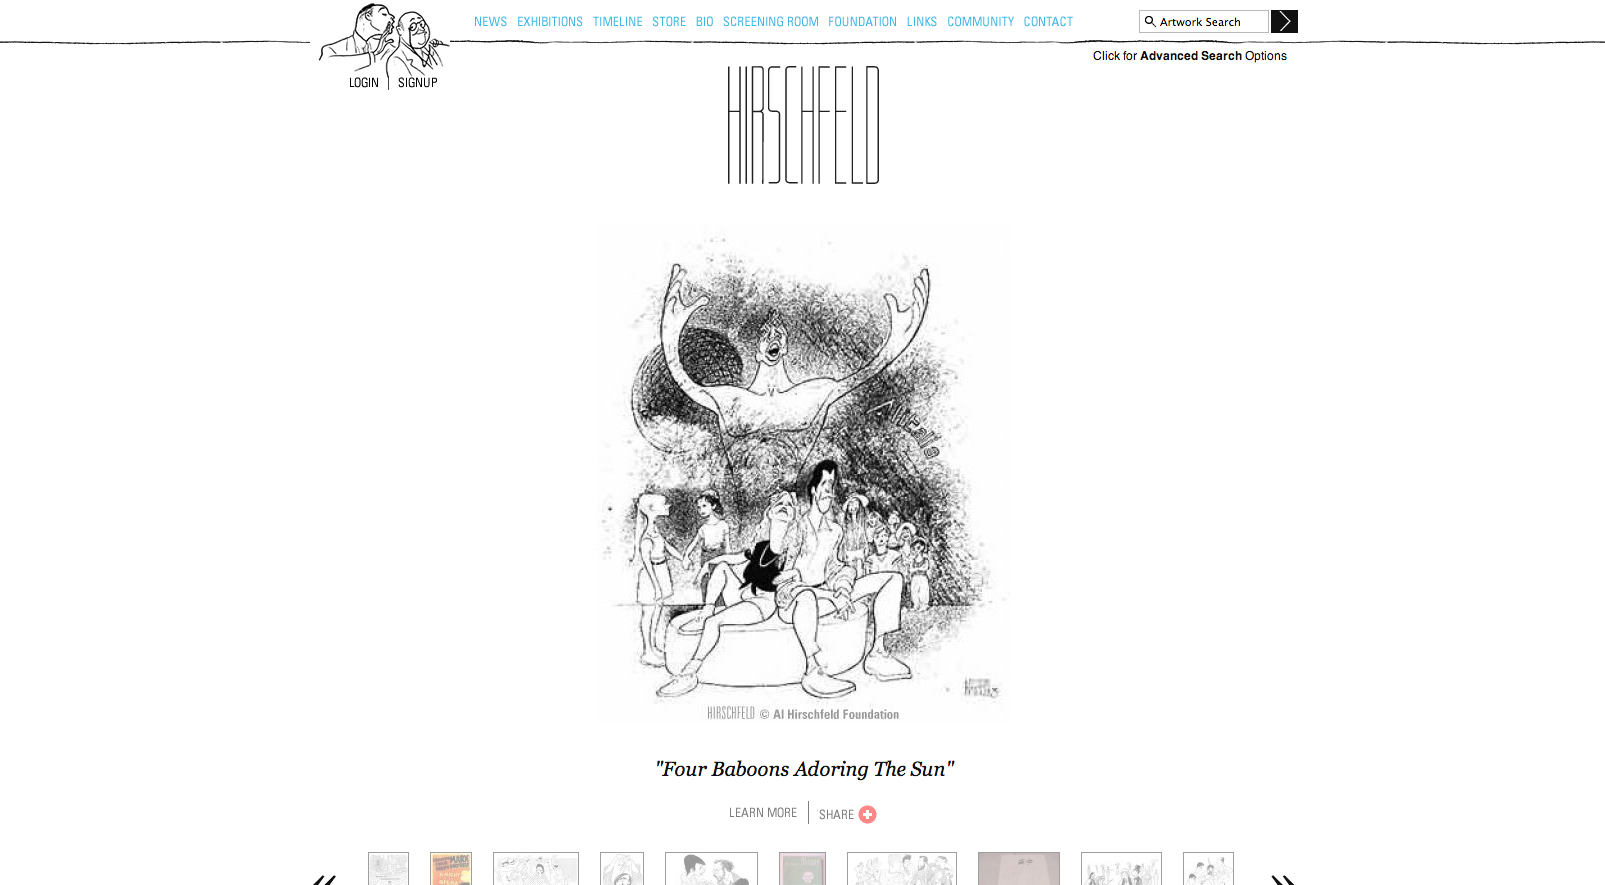 Al Hirschfeld Foundation